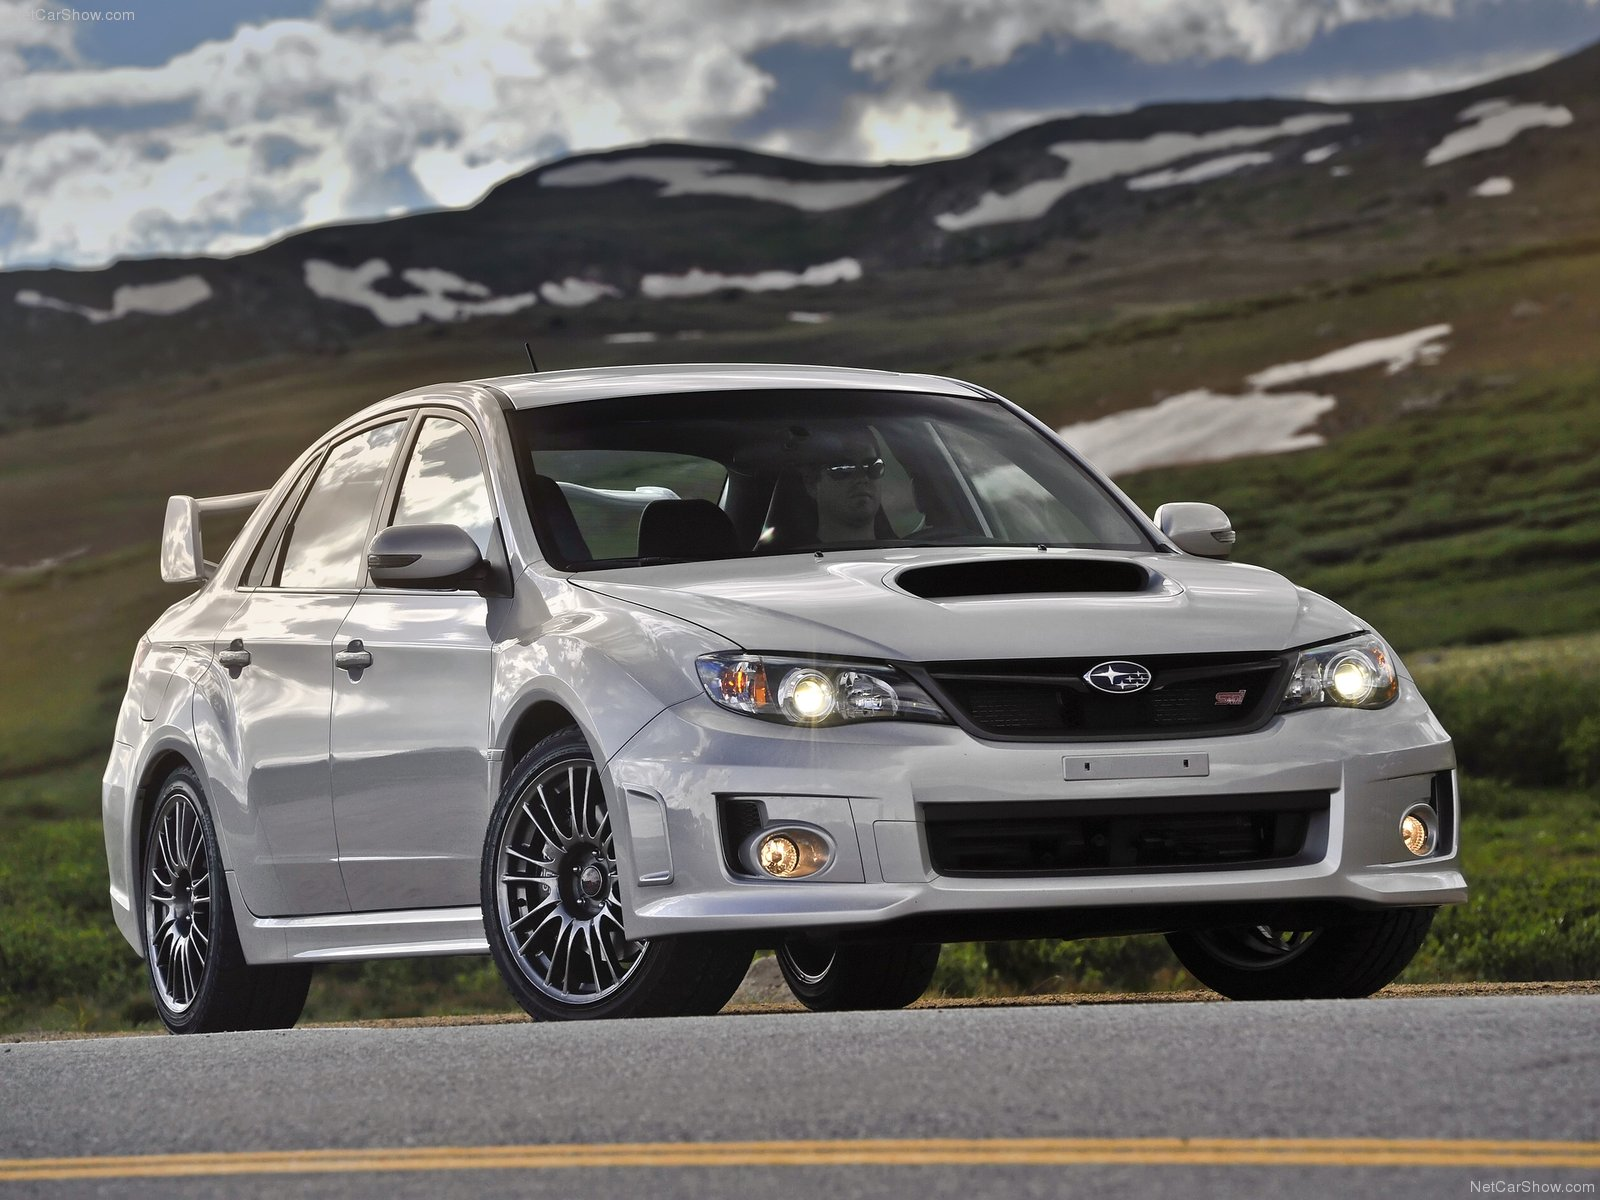 subaru impreza wrx sti 2011 auto keirning cars. Black Bedroom Furniture Sets. Home Design Ideas